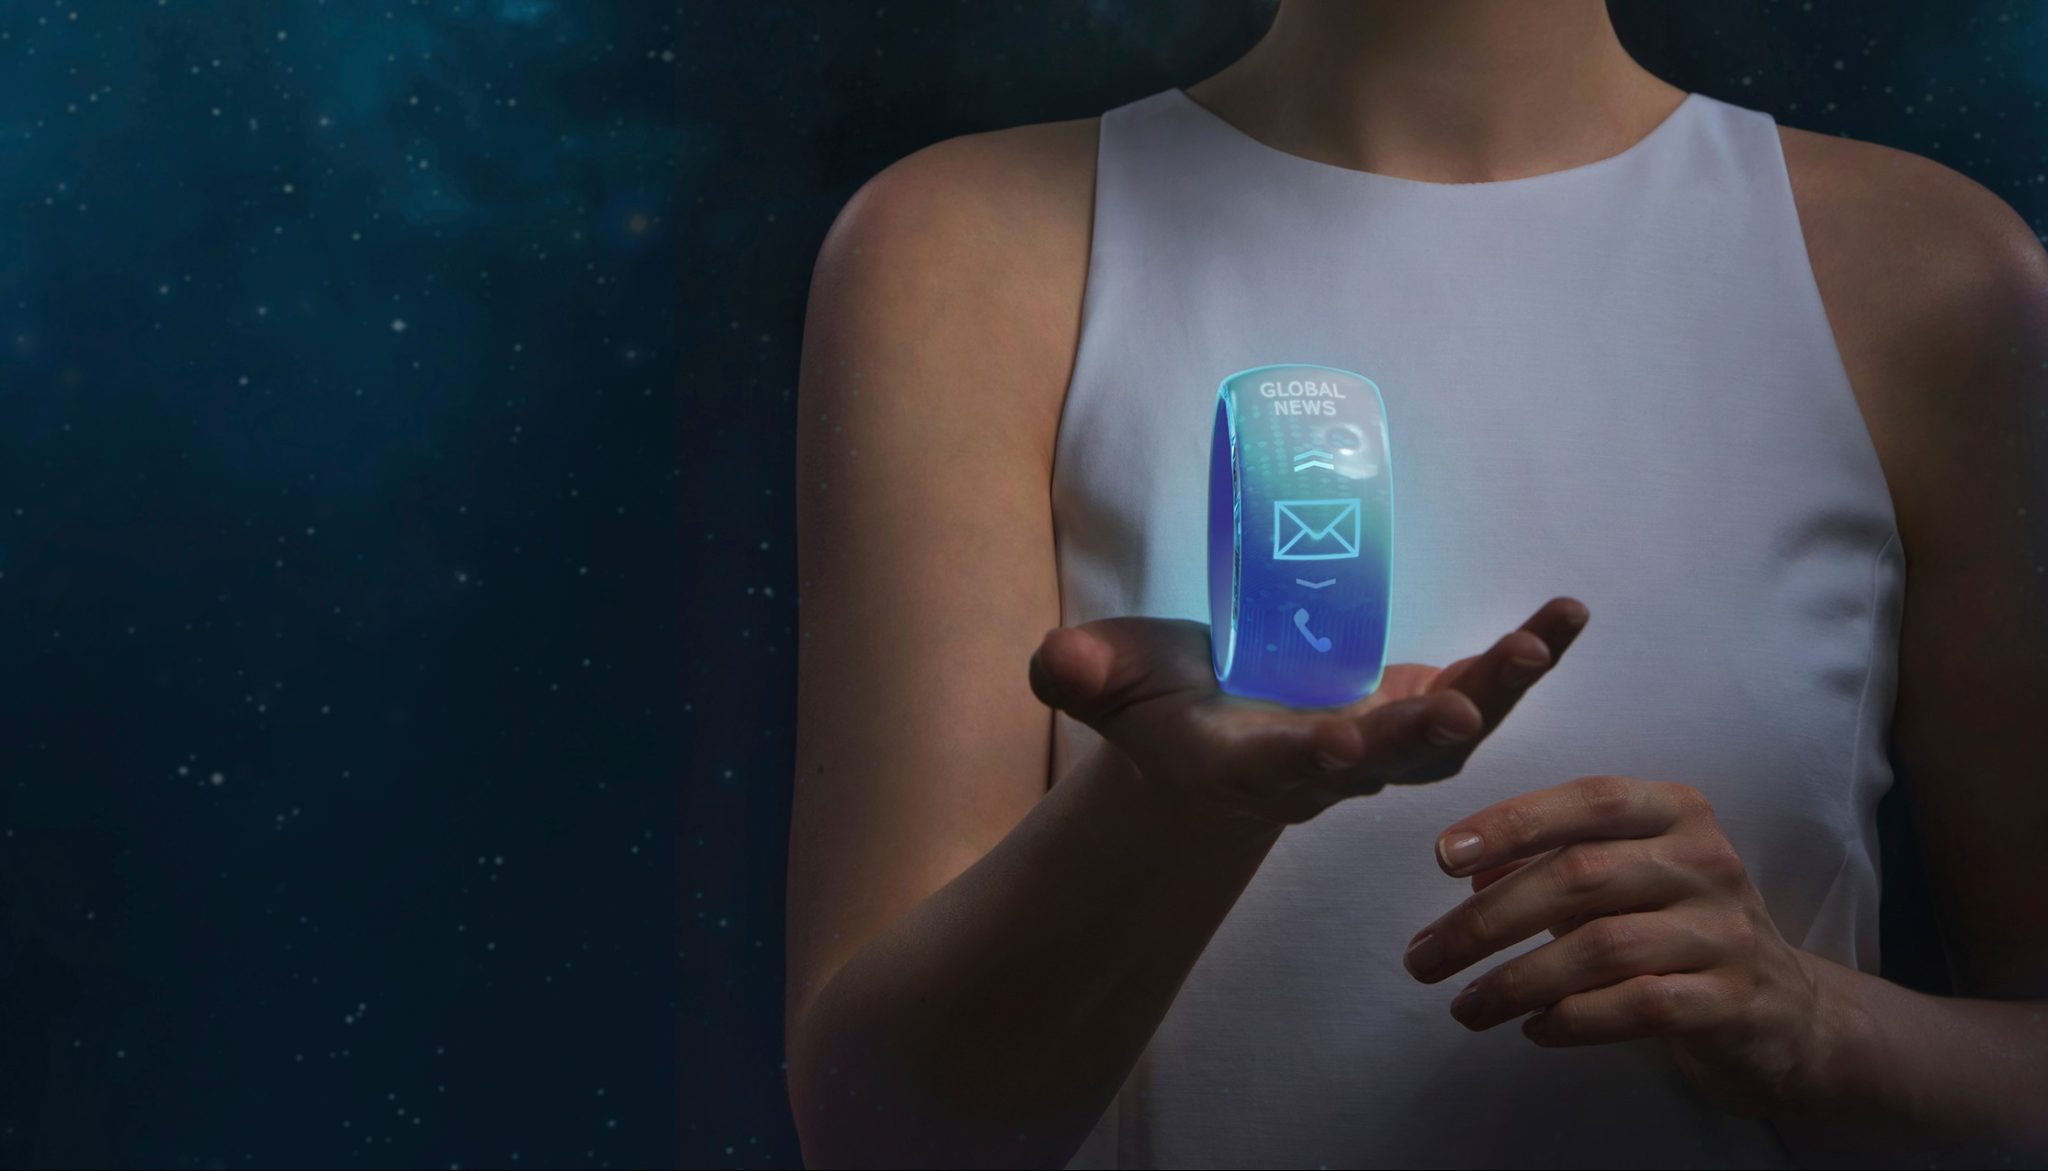 Wearable technology promises greater efficiency in cities, industry and life